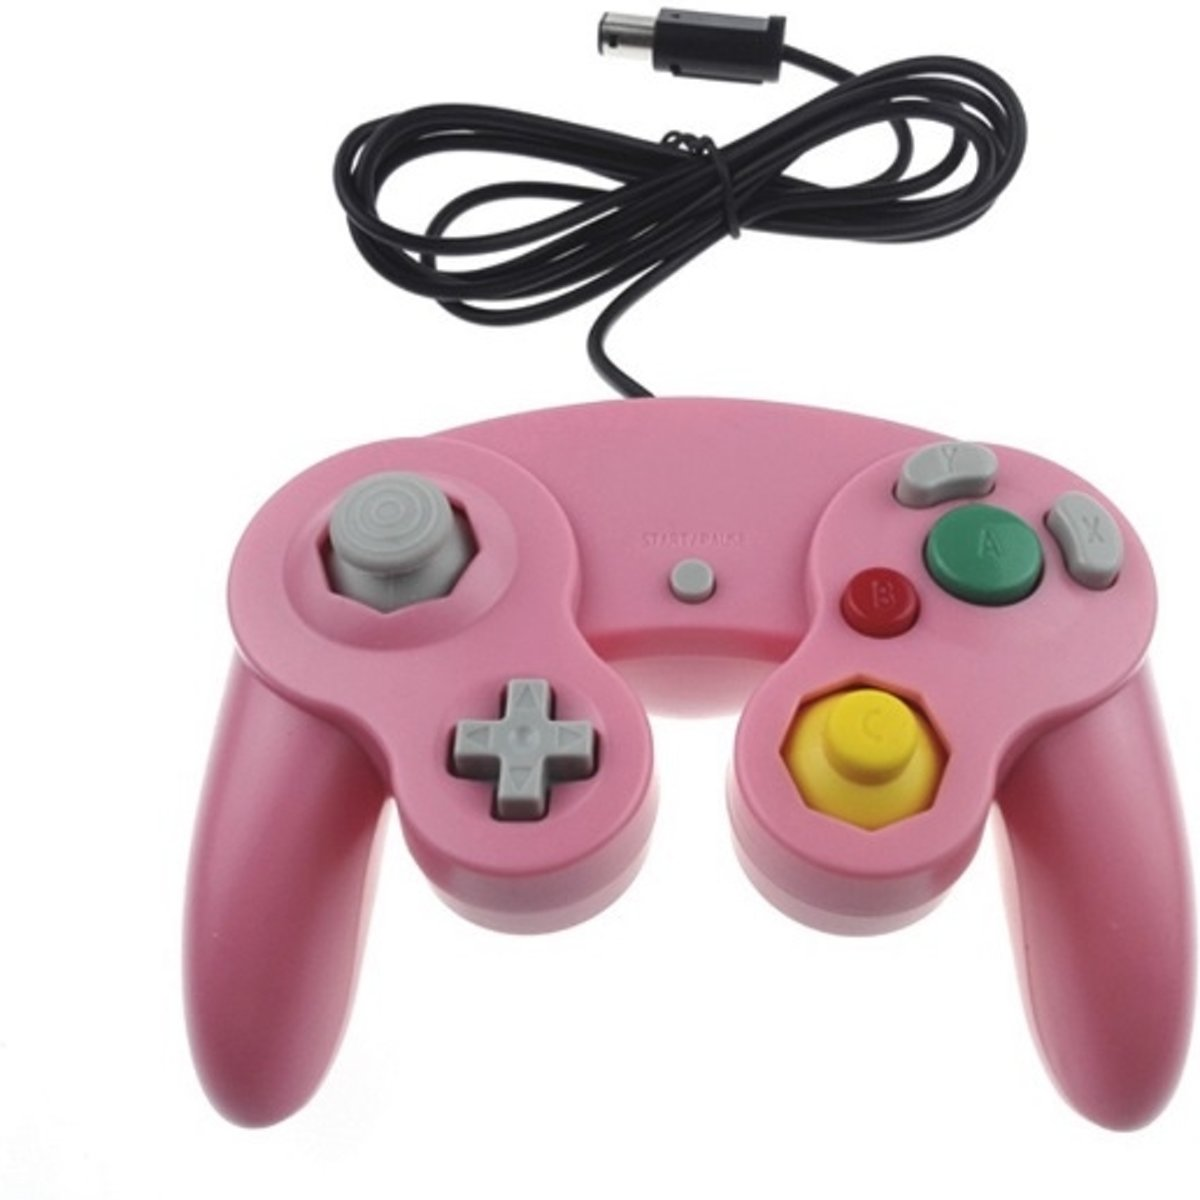 Gamecube Reproduction Controller - Roze